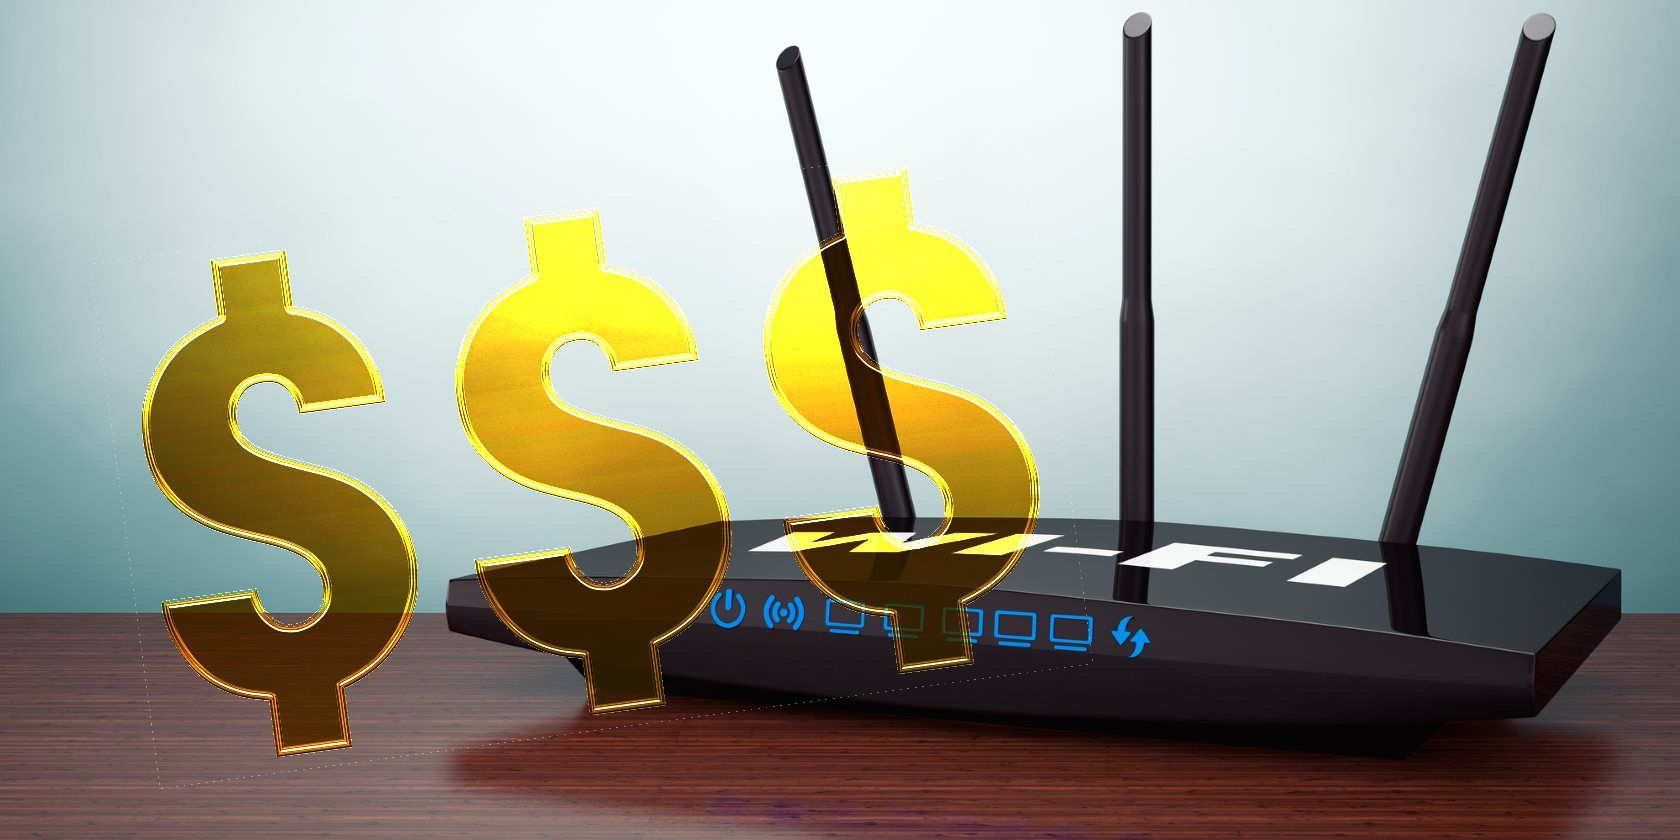 7 Reasons Why You Should Replace Your ISP's Router